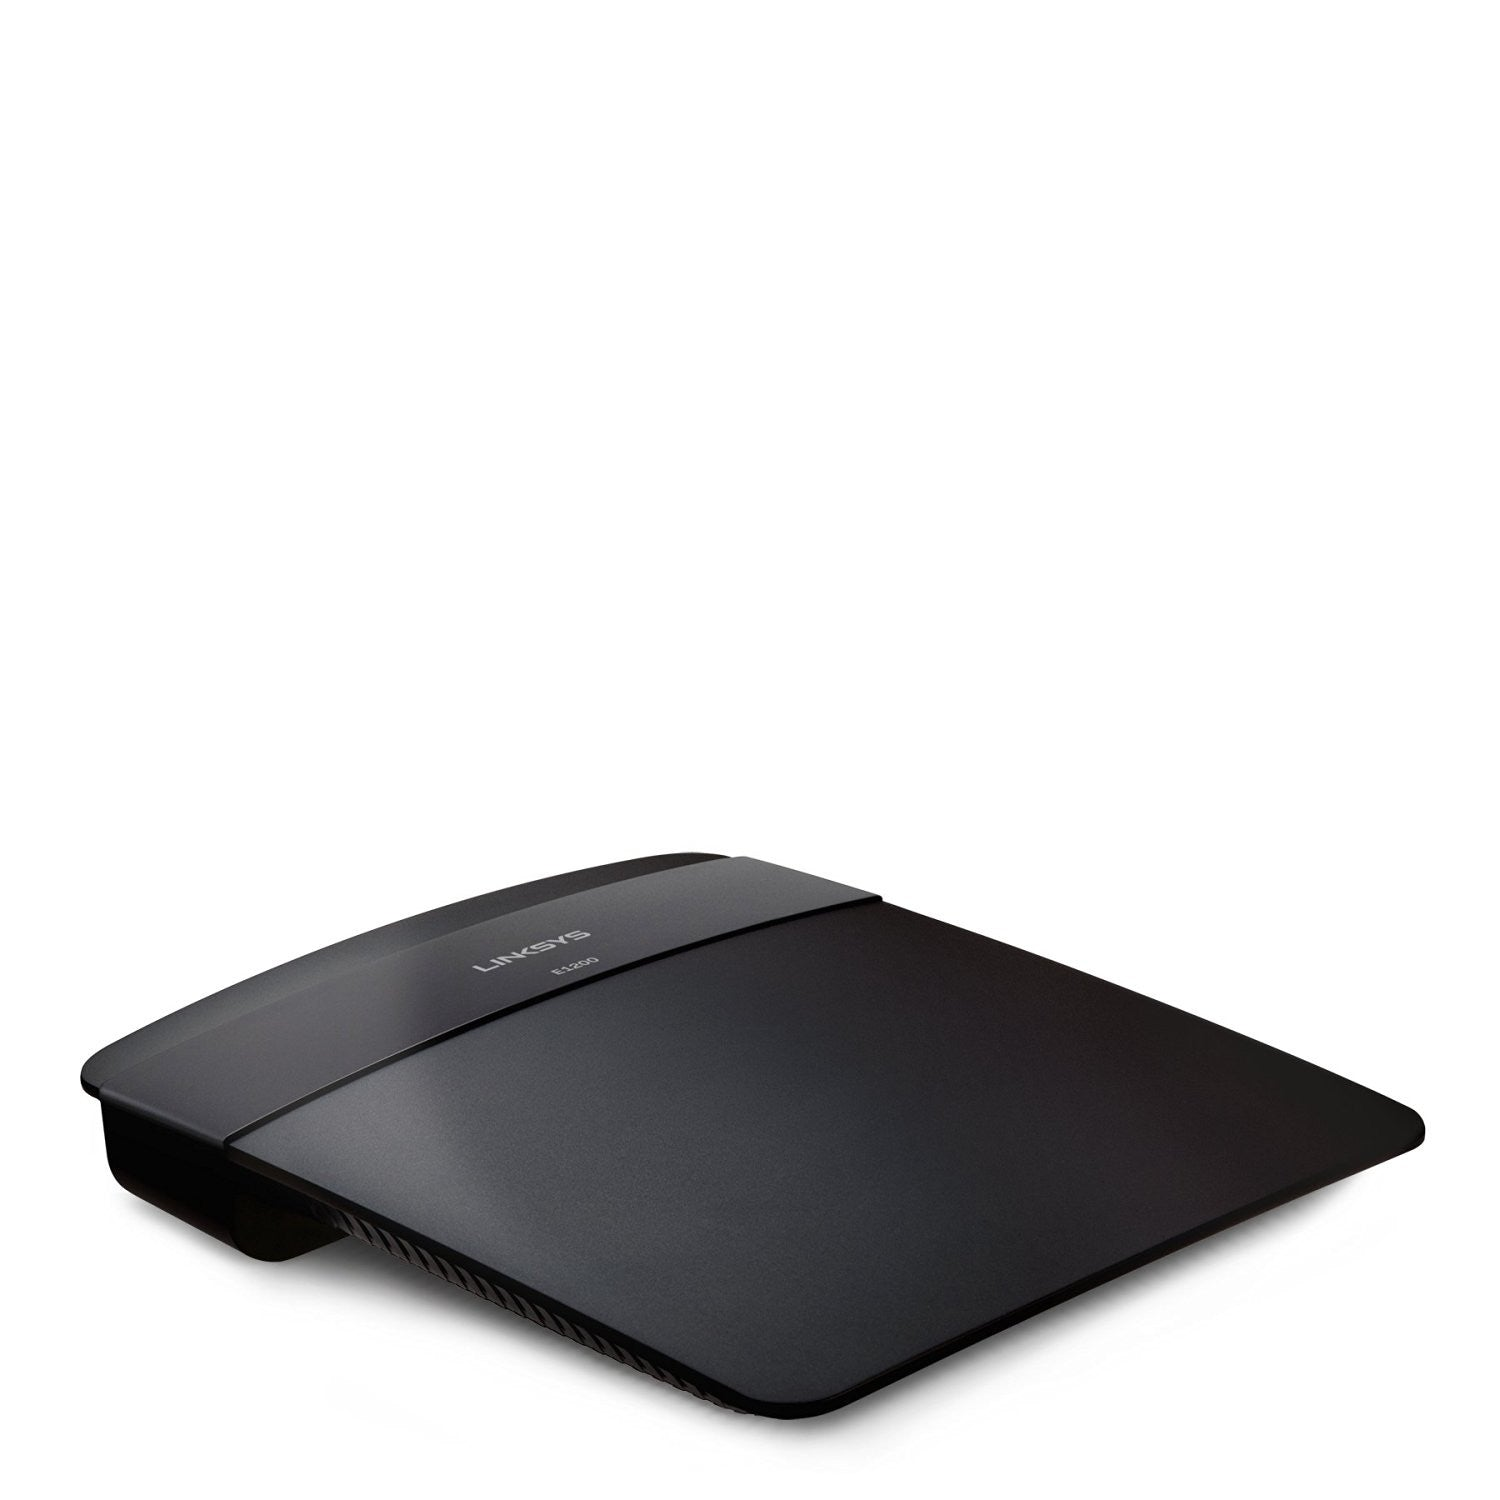 Buffered VPN Router Linksys N300 Flashed with Tomato Firmware Top View